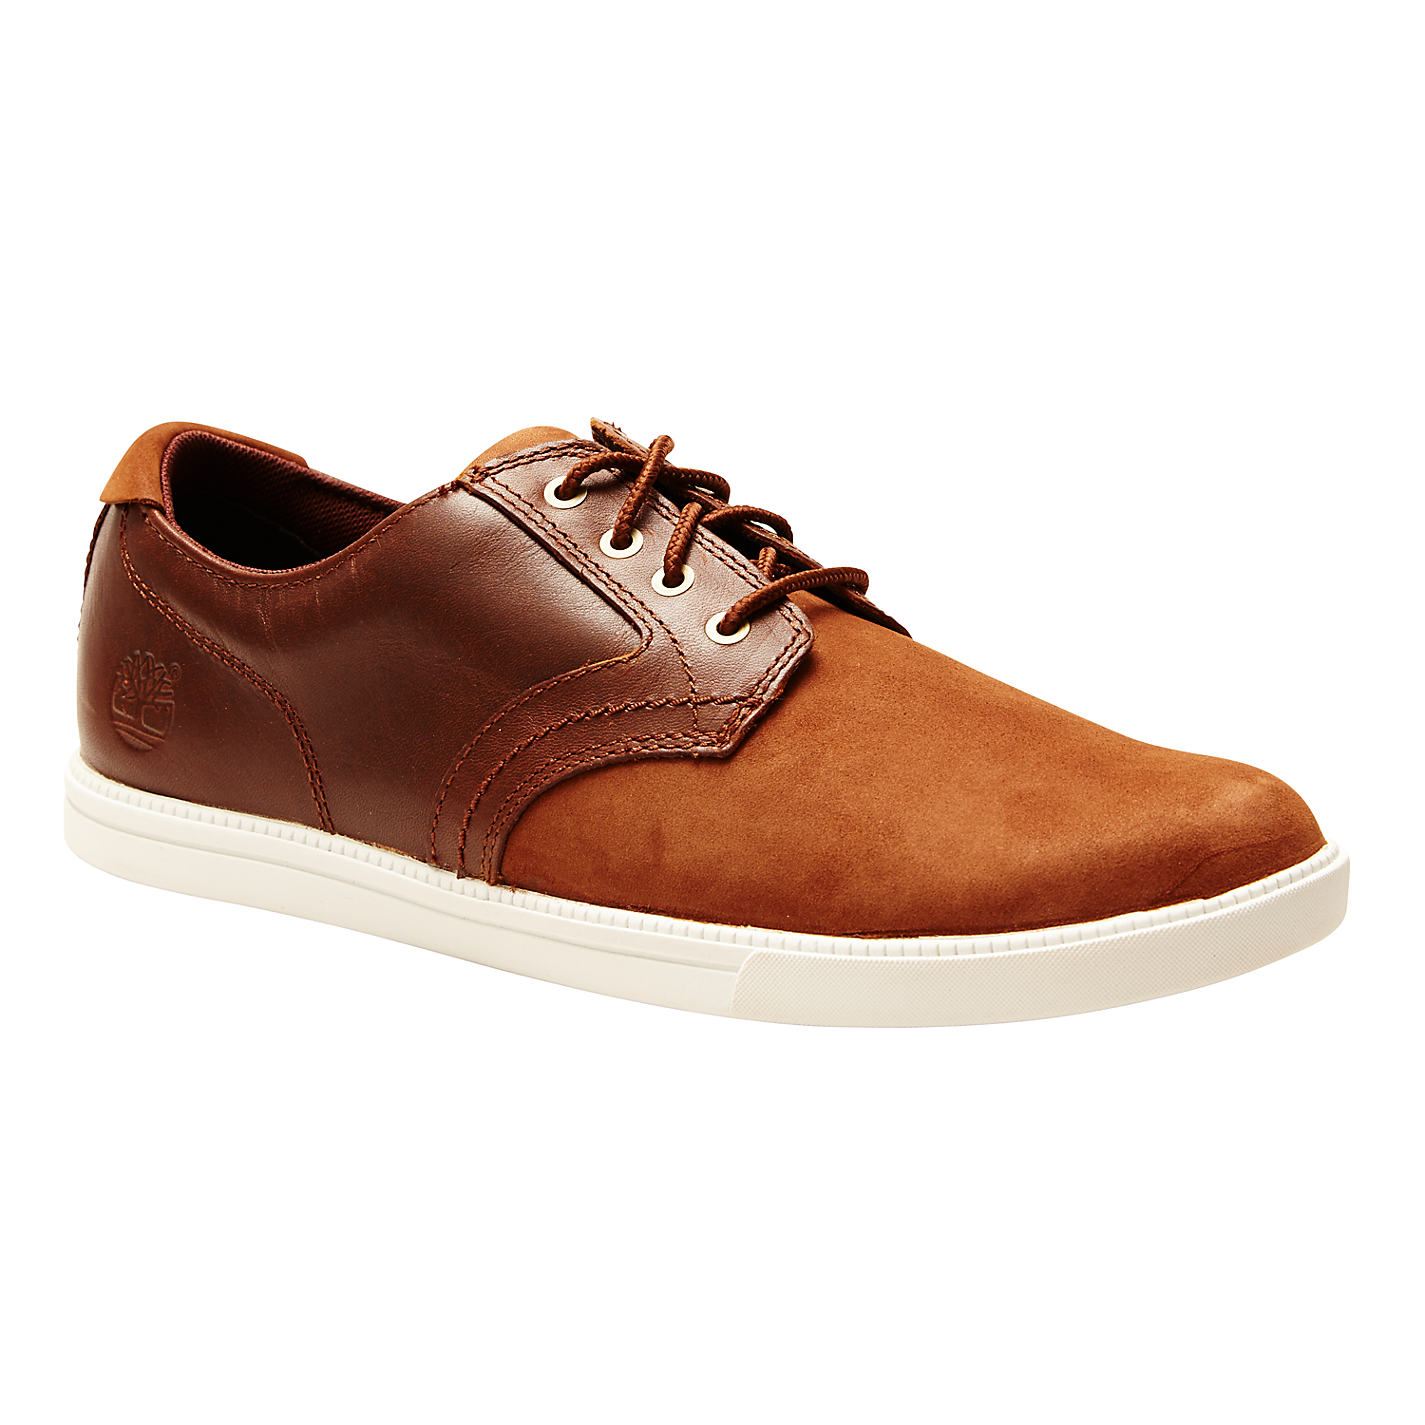 Where To Buy Timberland Shoes In Philippines - Bye Bye Laundry